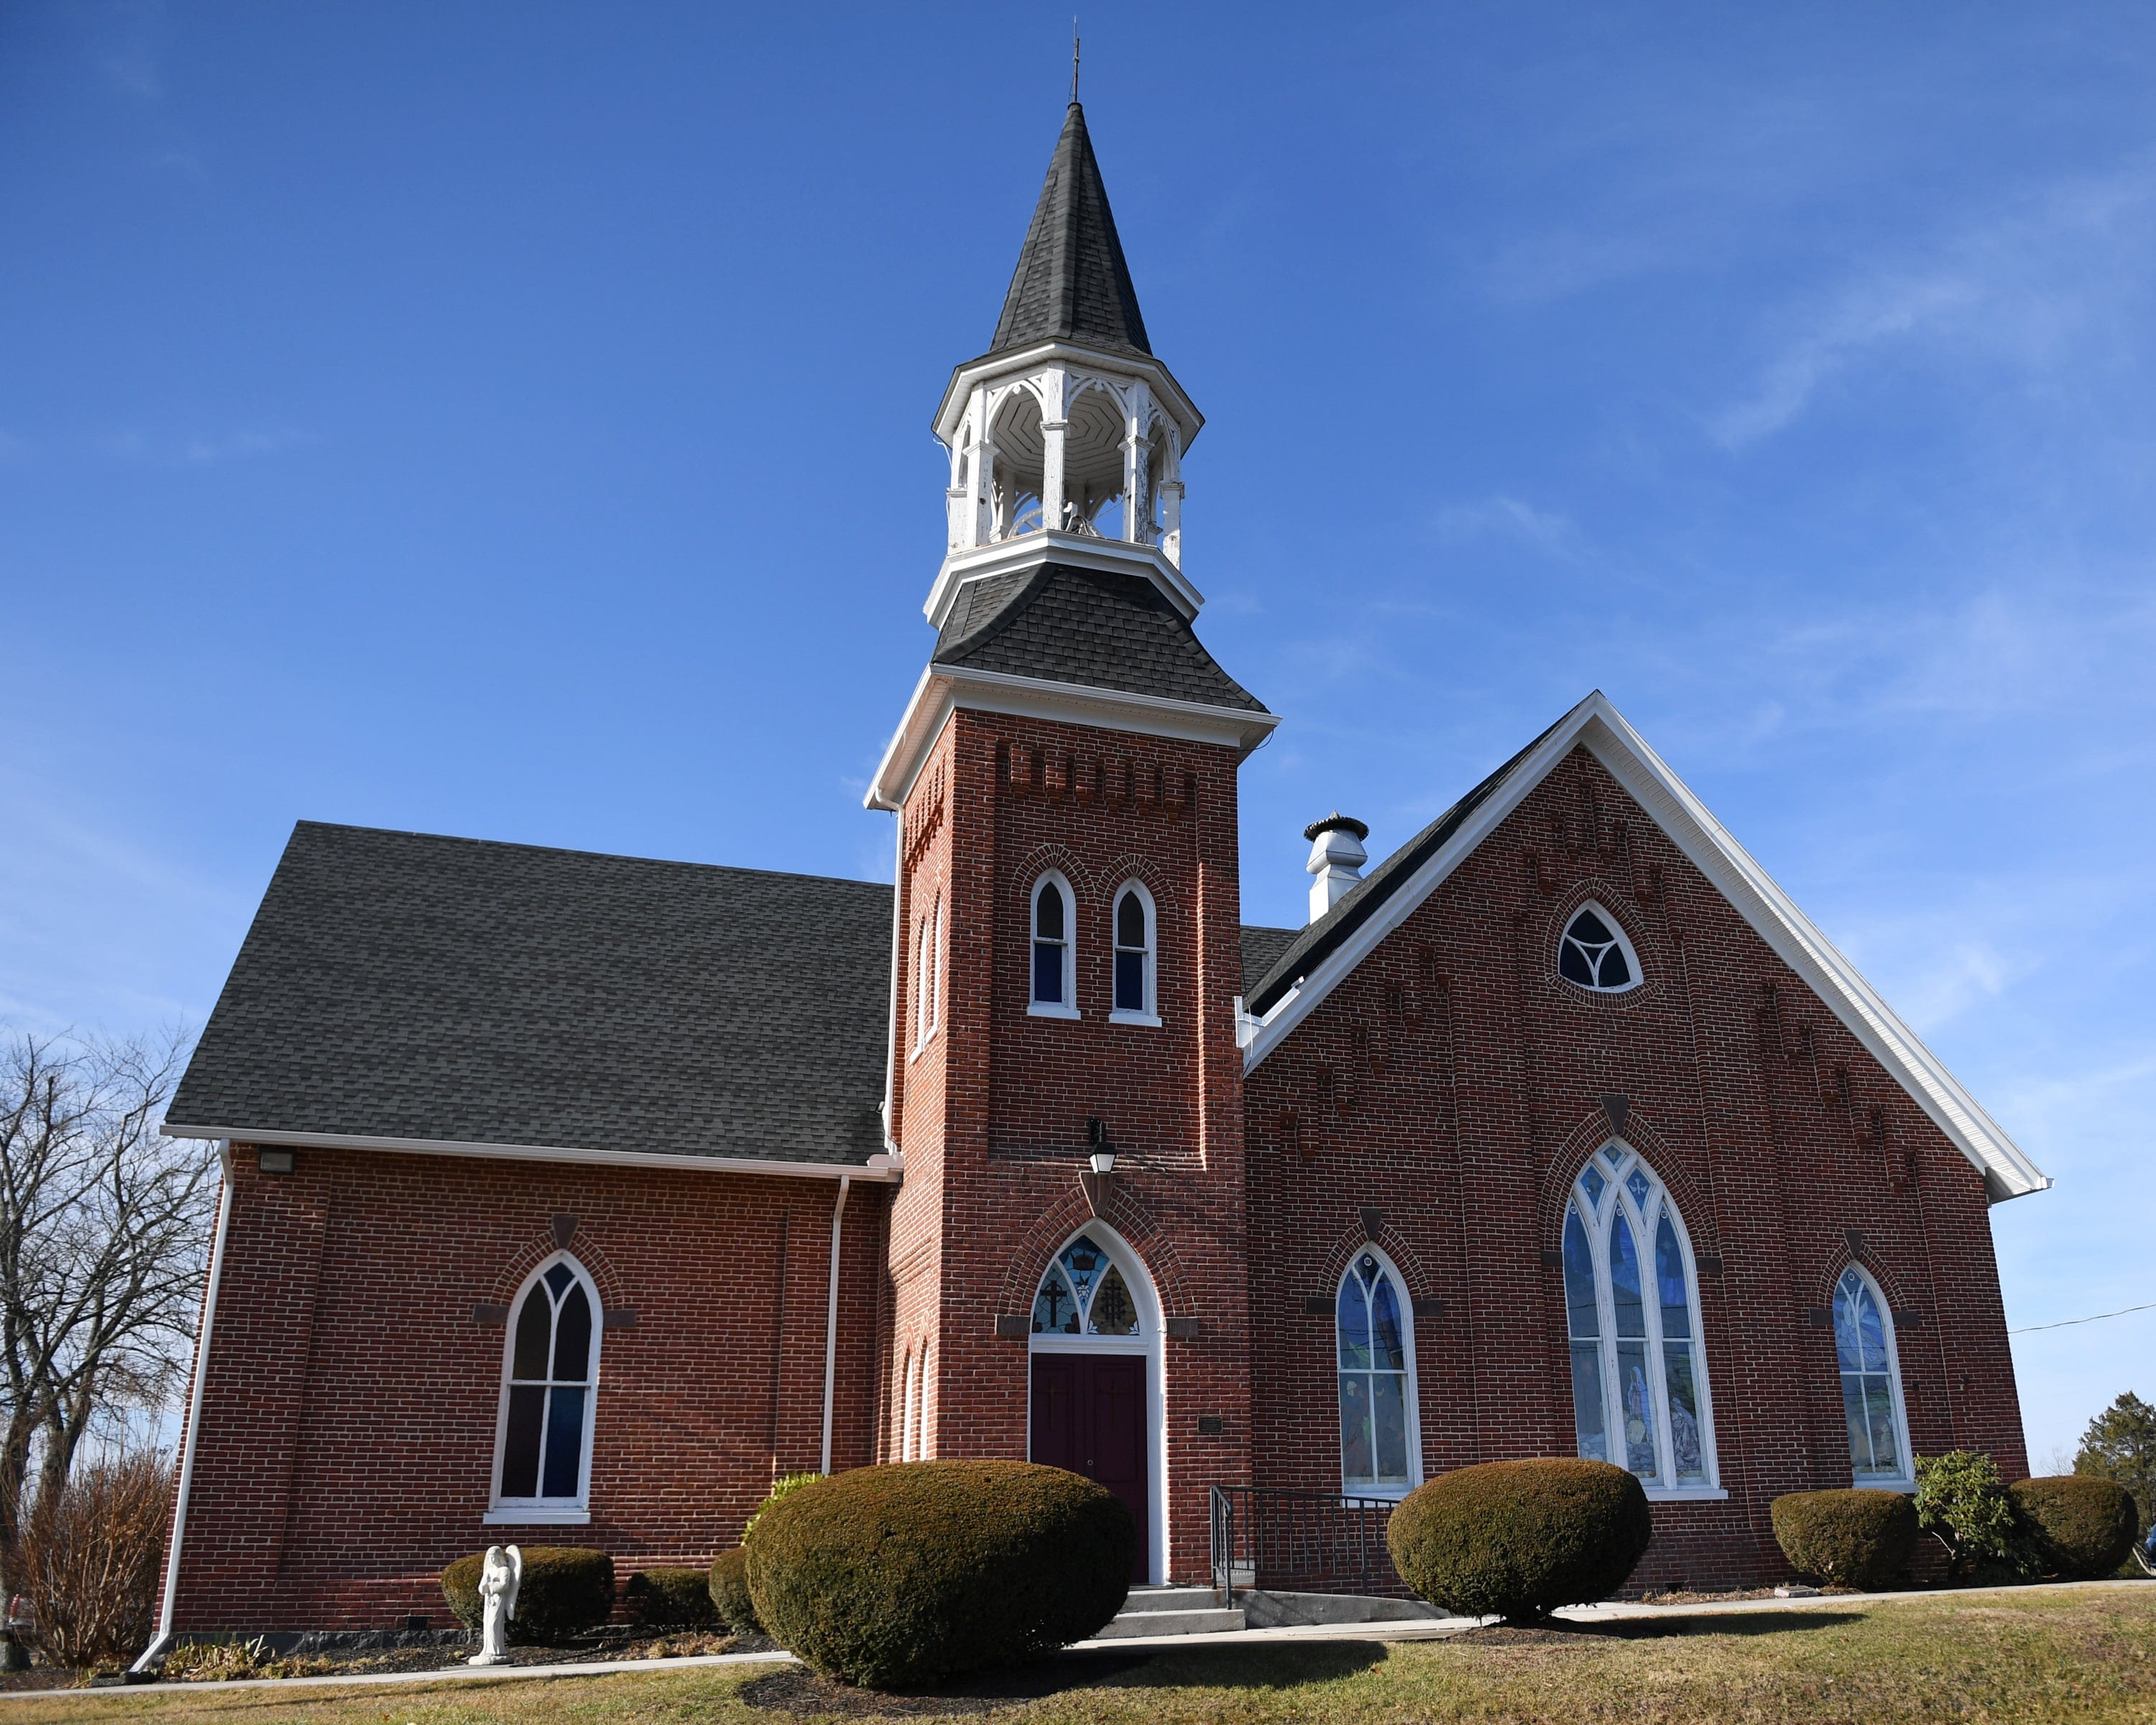 A photo of a house of worship on a sunny day, with a bright blue sky, green grass, and the building set in the middle. The building is made out of brick and features a large steepl.